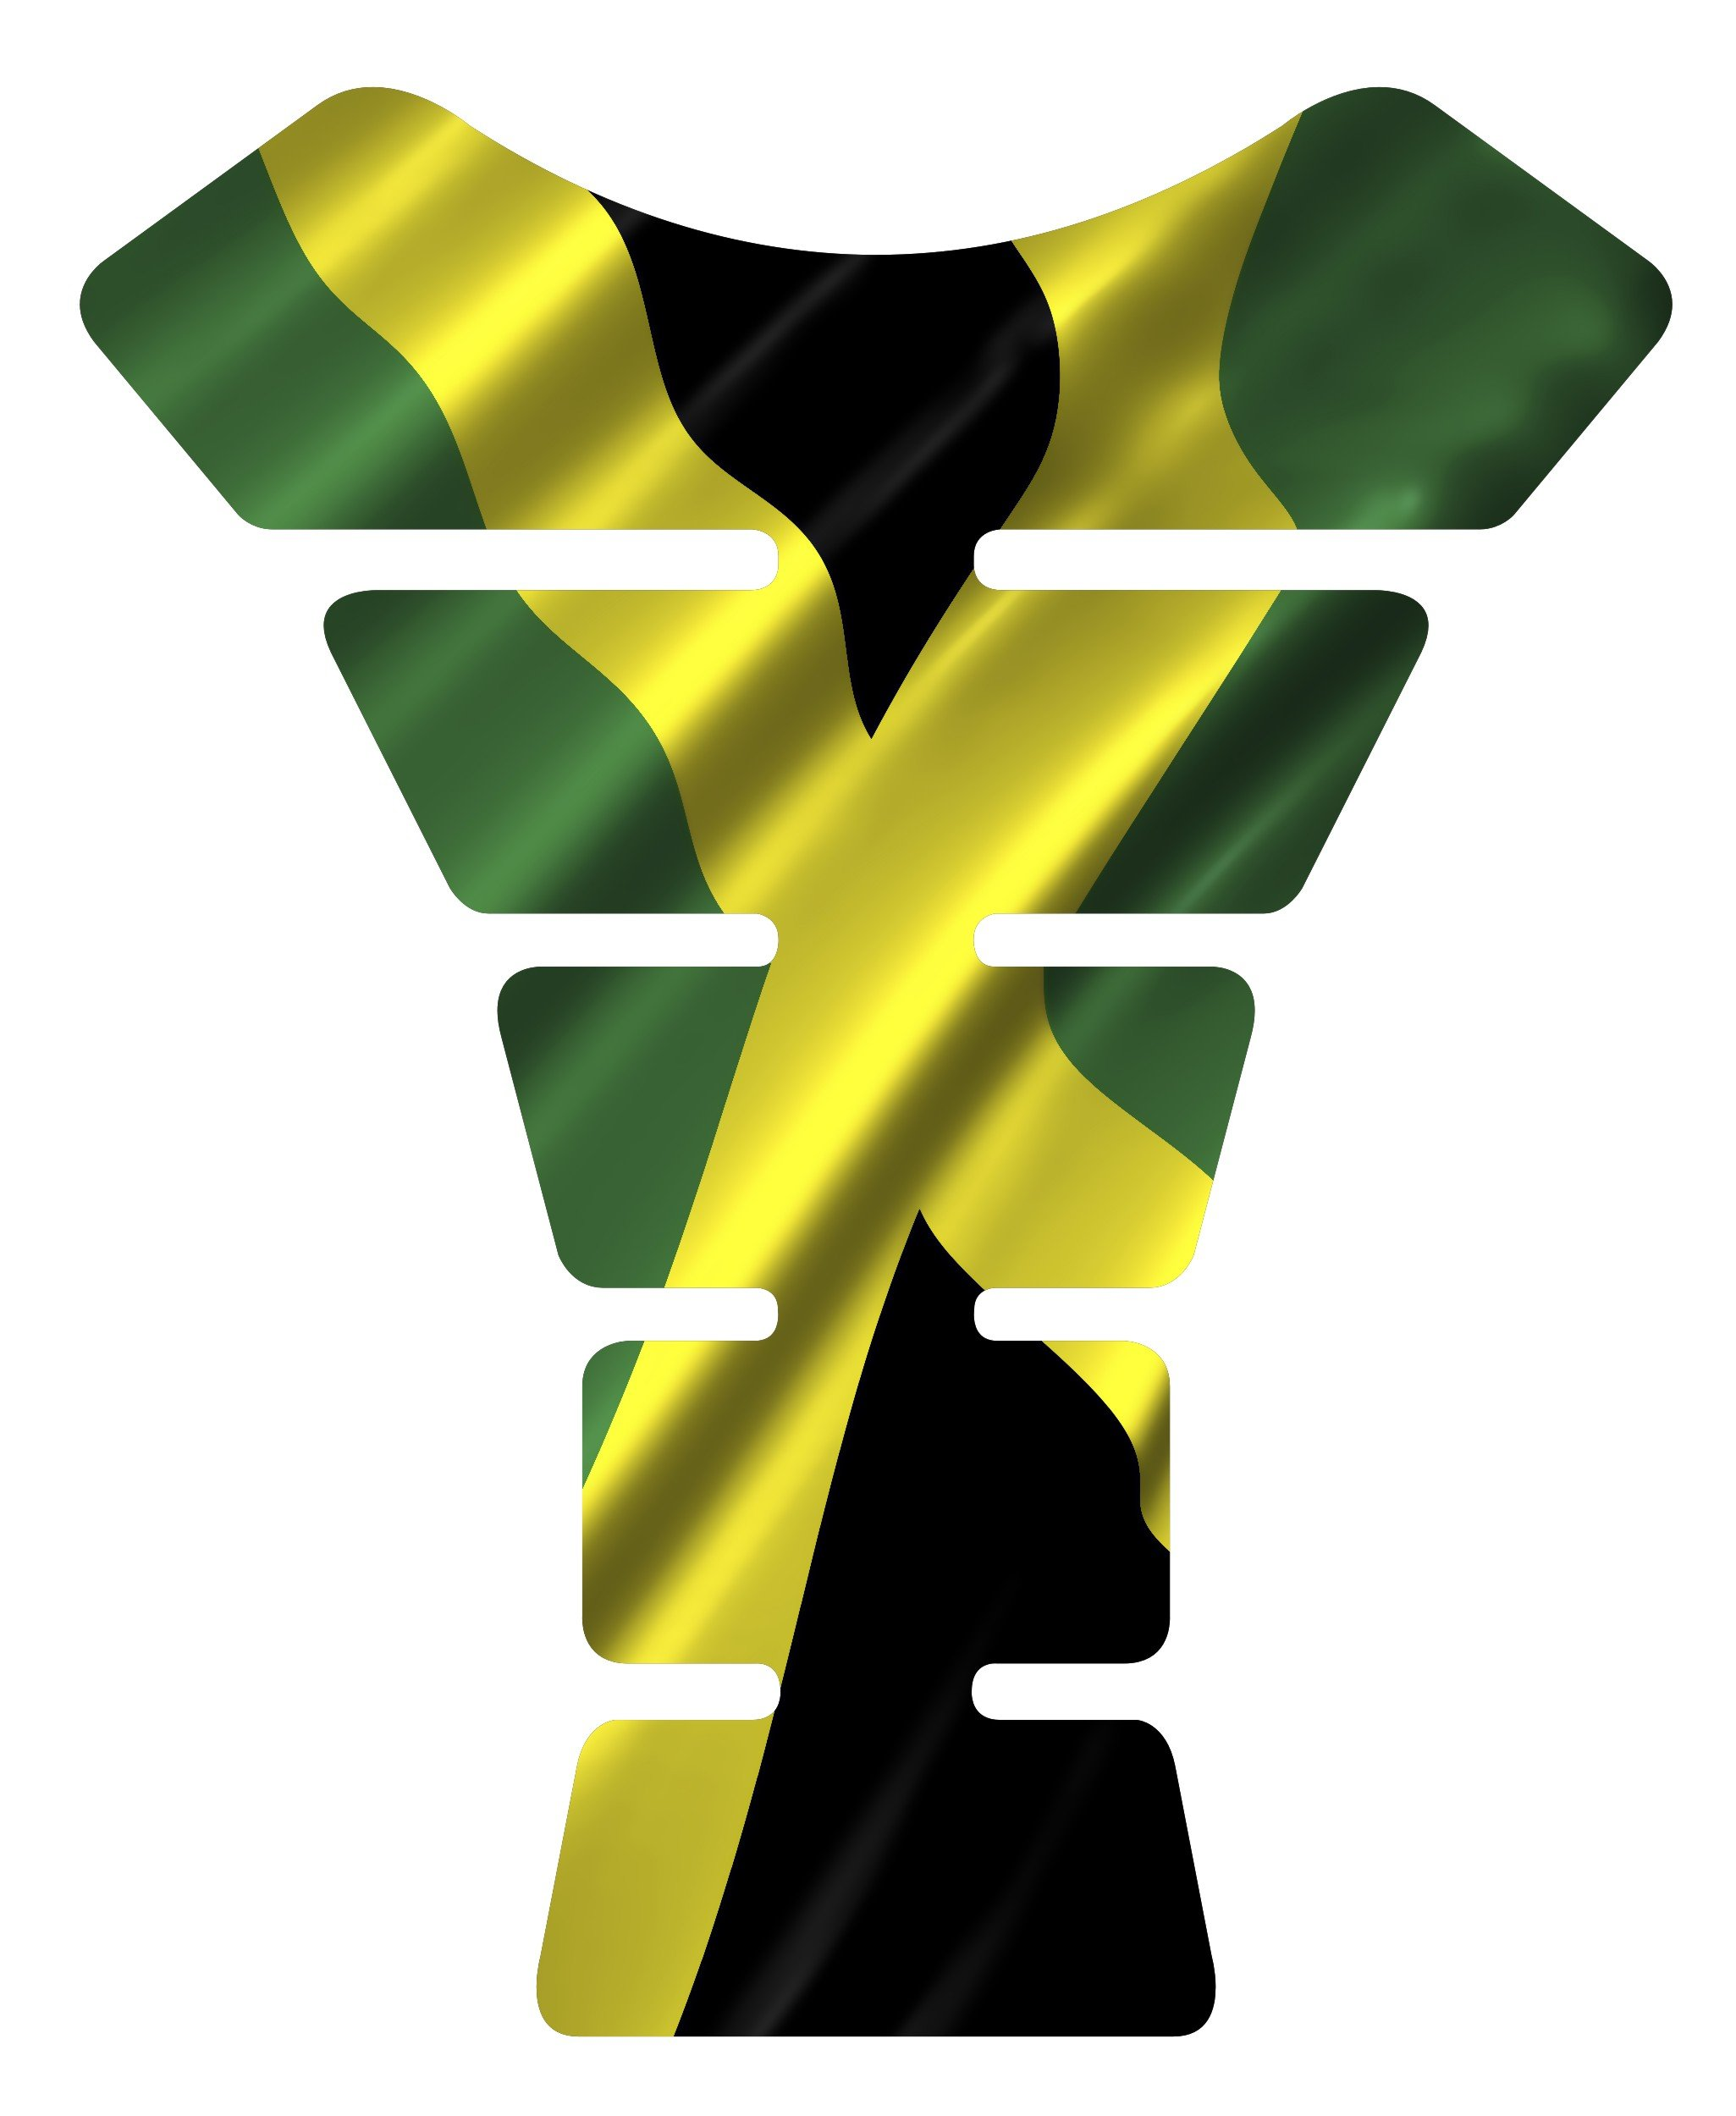 Motorcycle Jamaican waving jamaica flag sportbike gel tank pad protector tankpad guard sticker